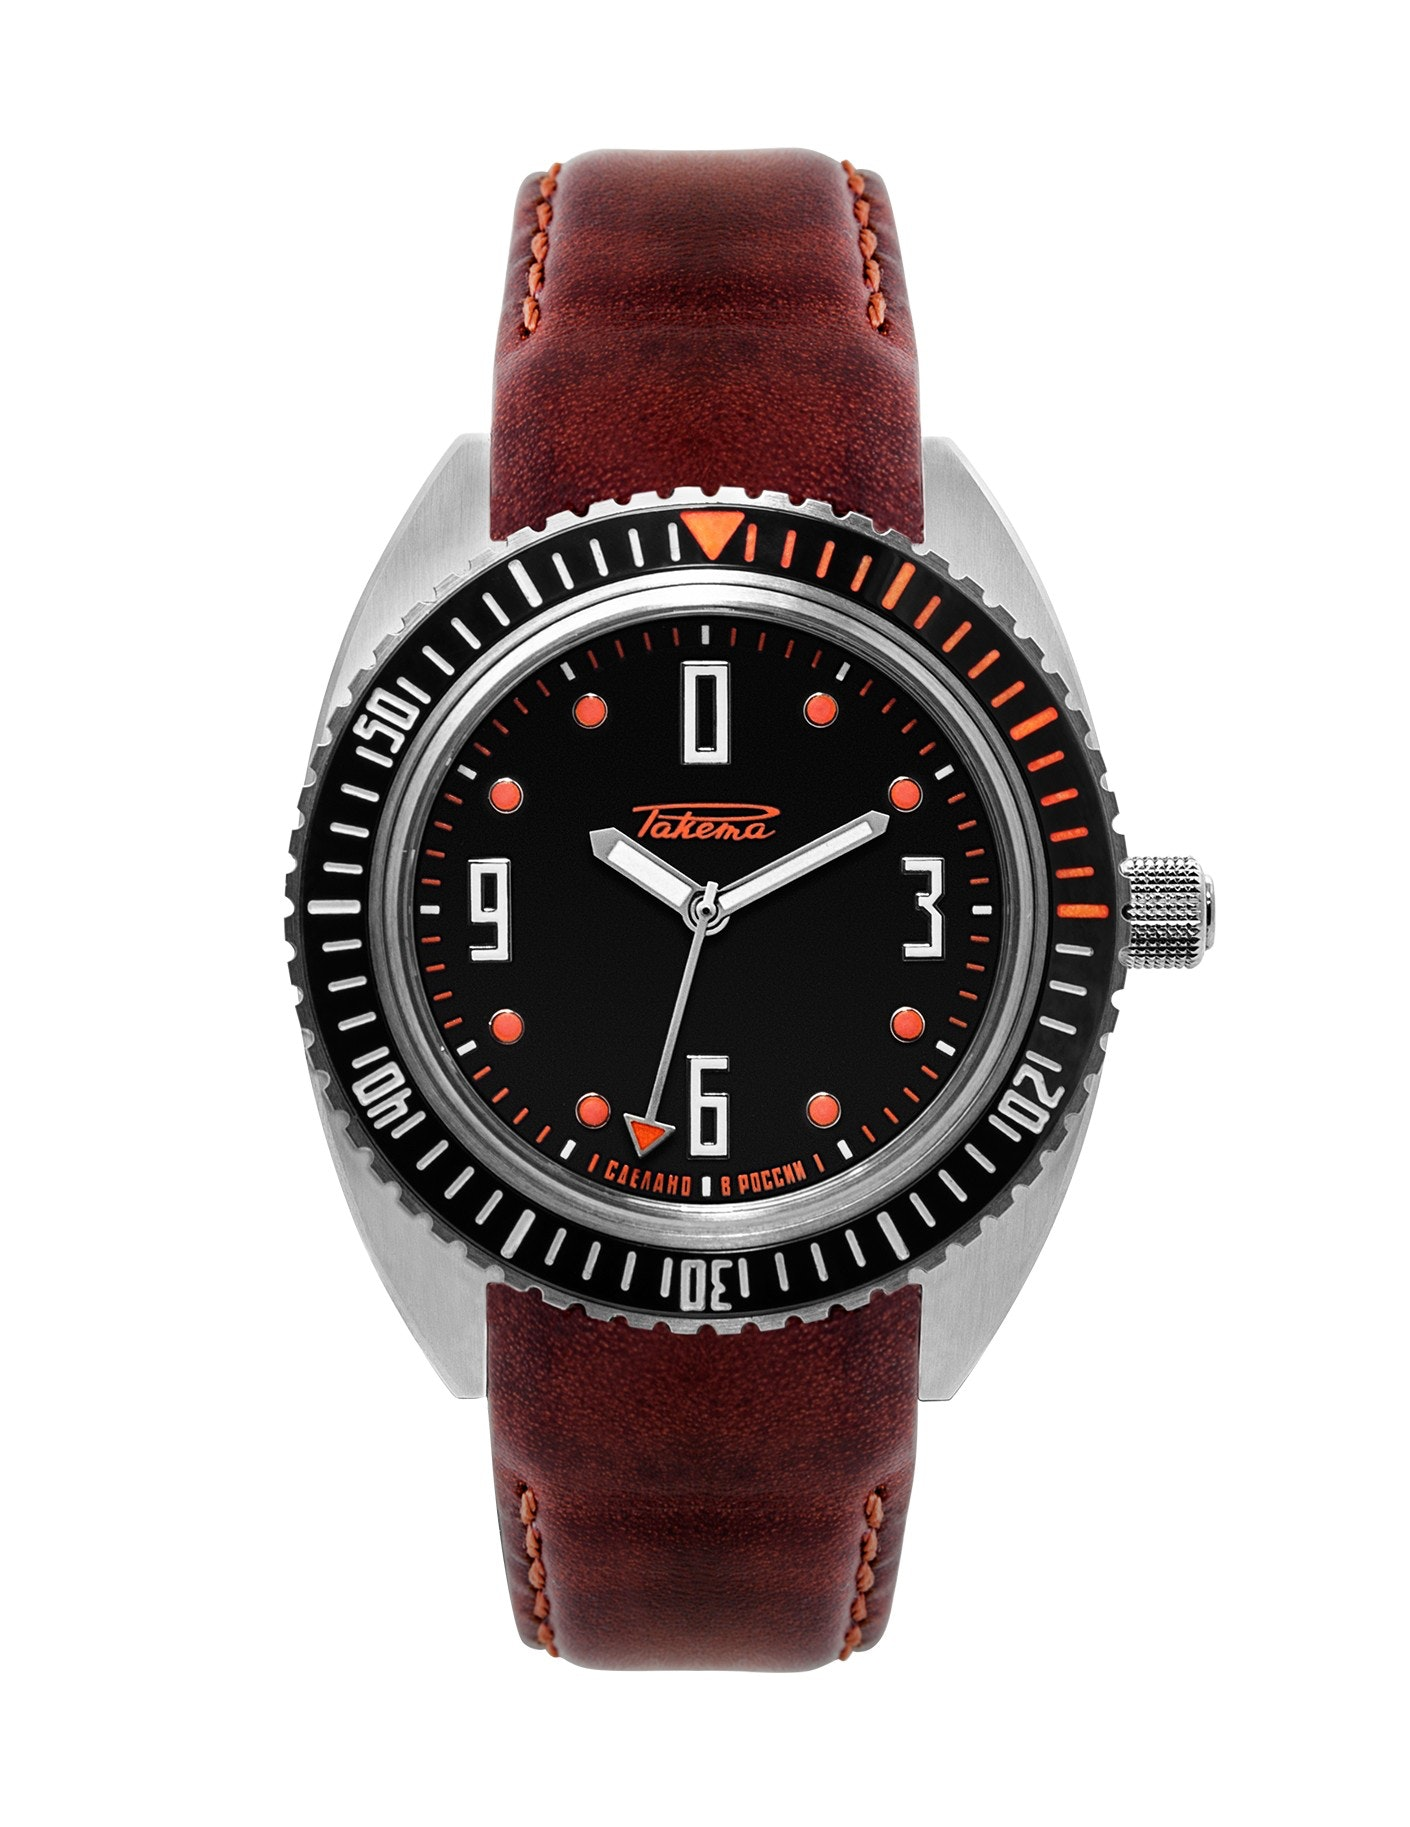 Amphibia 0120 - Specially for ice diving